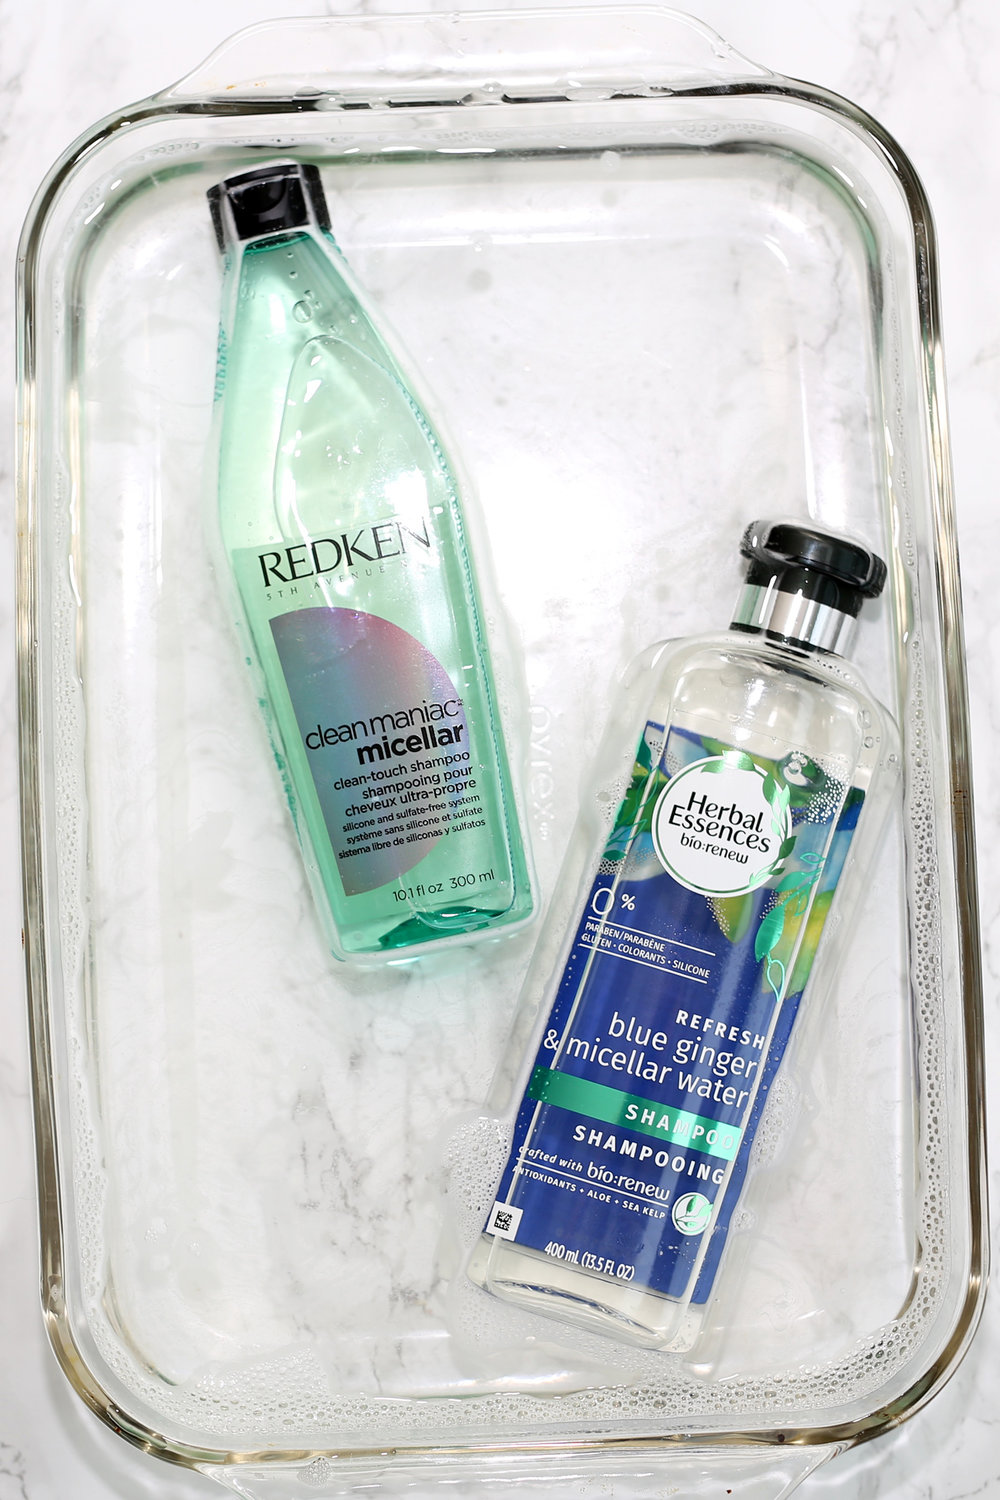 Micellar Shampoo Is The Next Big Thing For Hair Care! - Redken Micellar Shampoo and Herbal Essences bio renew Micellar Shampoo and conditioner, Rachel Zipperian, Nathaie Martin, beauty blog woahstyle.com_6159.jpg